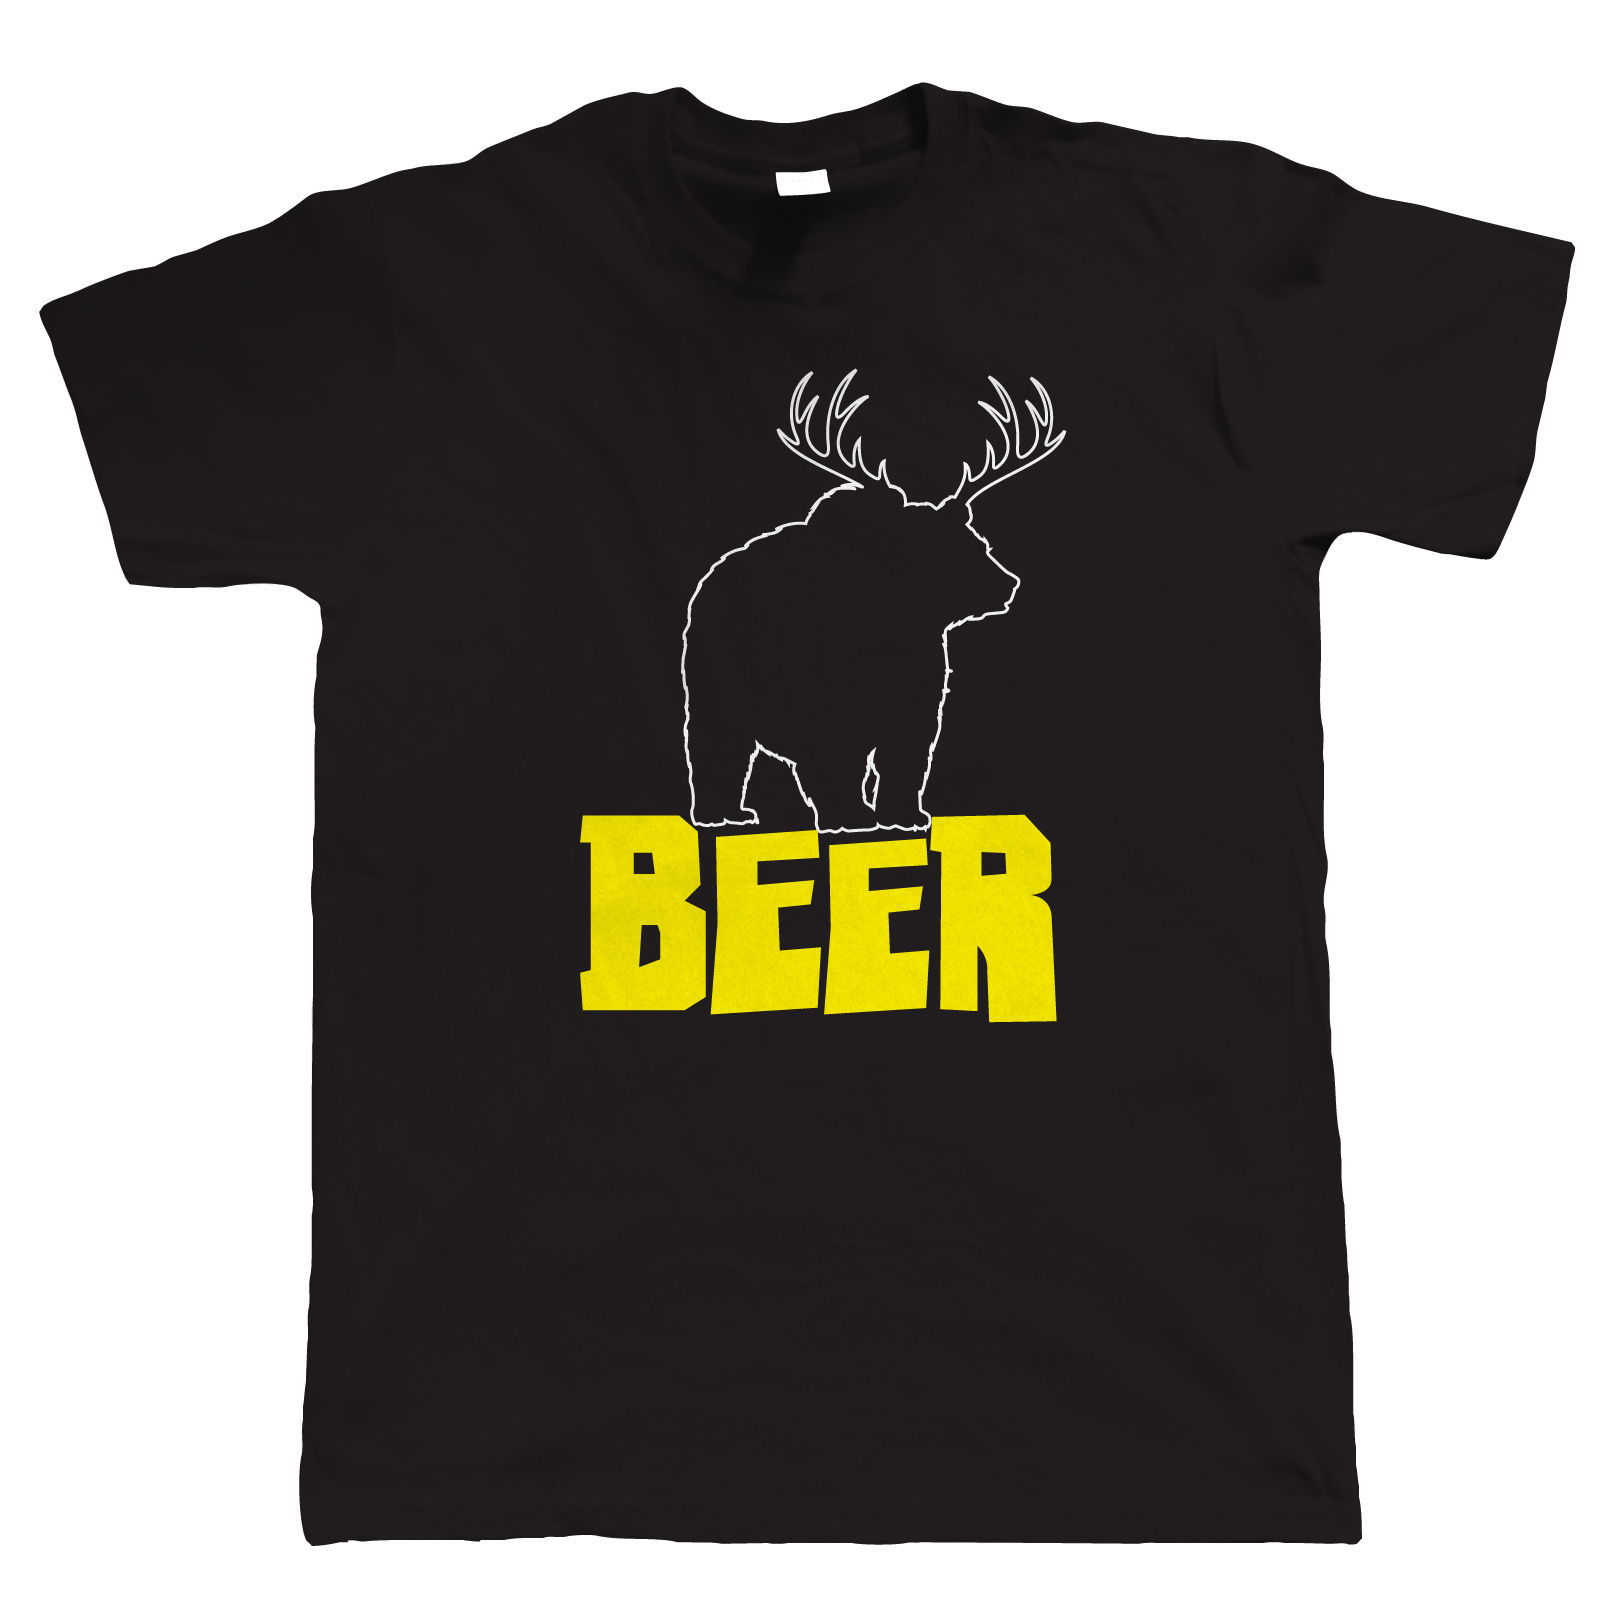 Bear Crossed Deer, Funny Mens T-Shirt - Birthday for Dad Him Fathers Day Short Sleeves Cotton T Shirt Top Tee Fashion